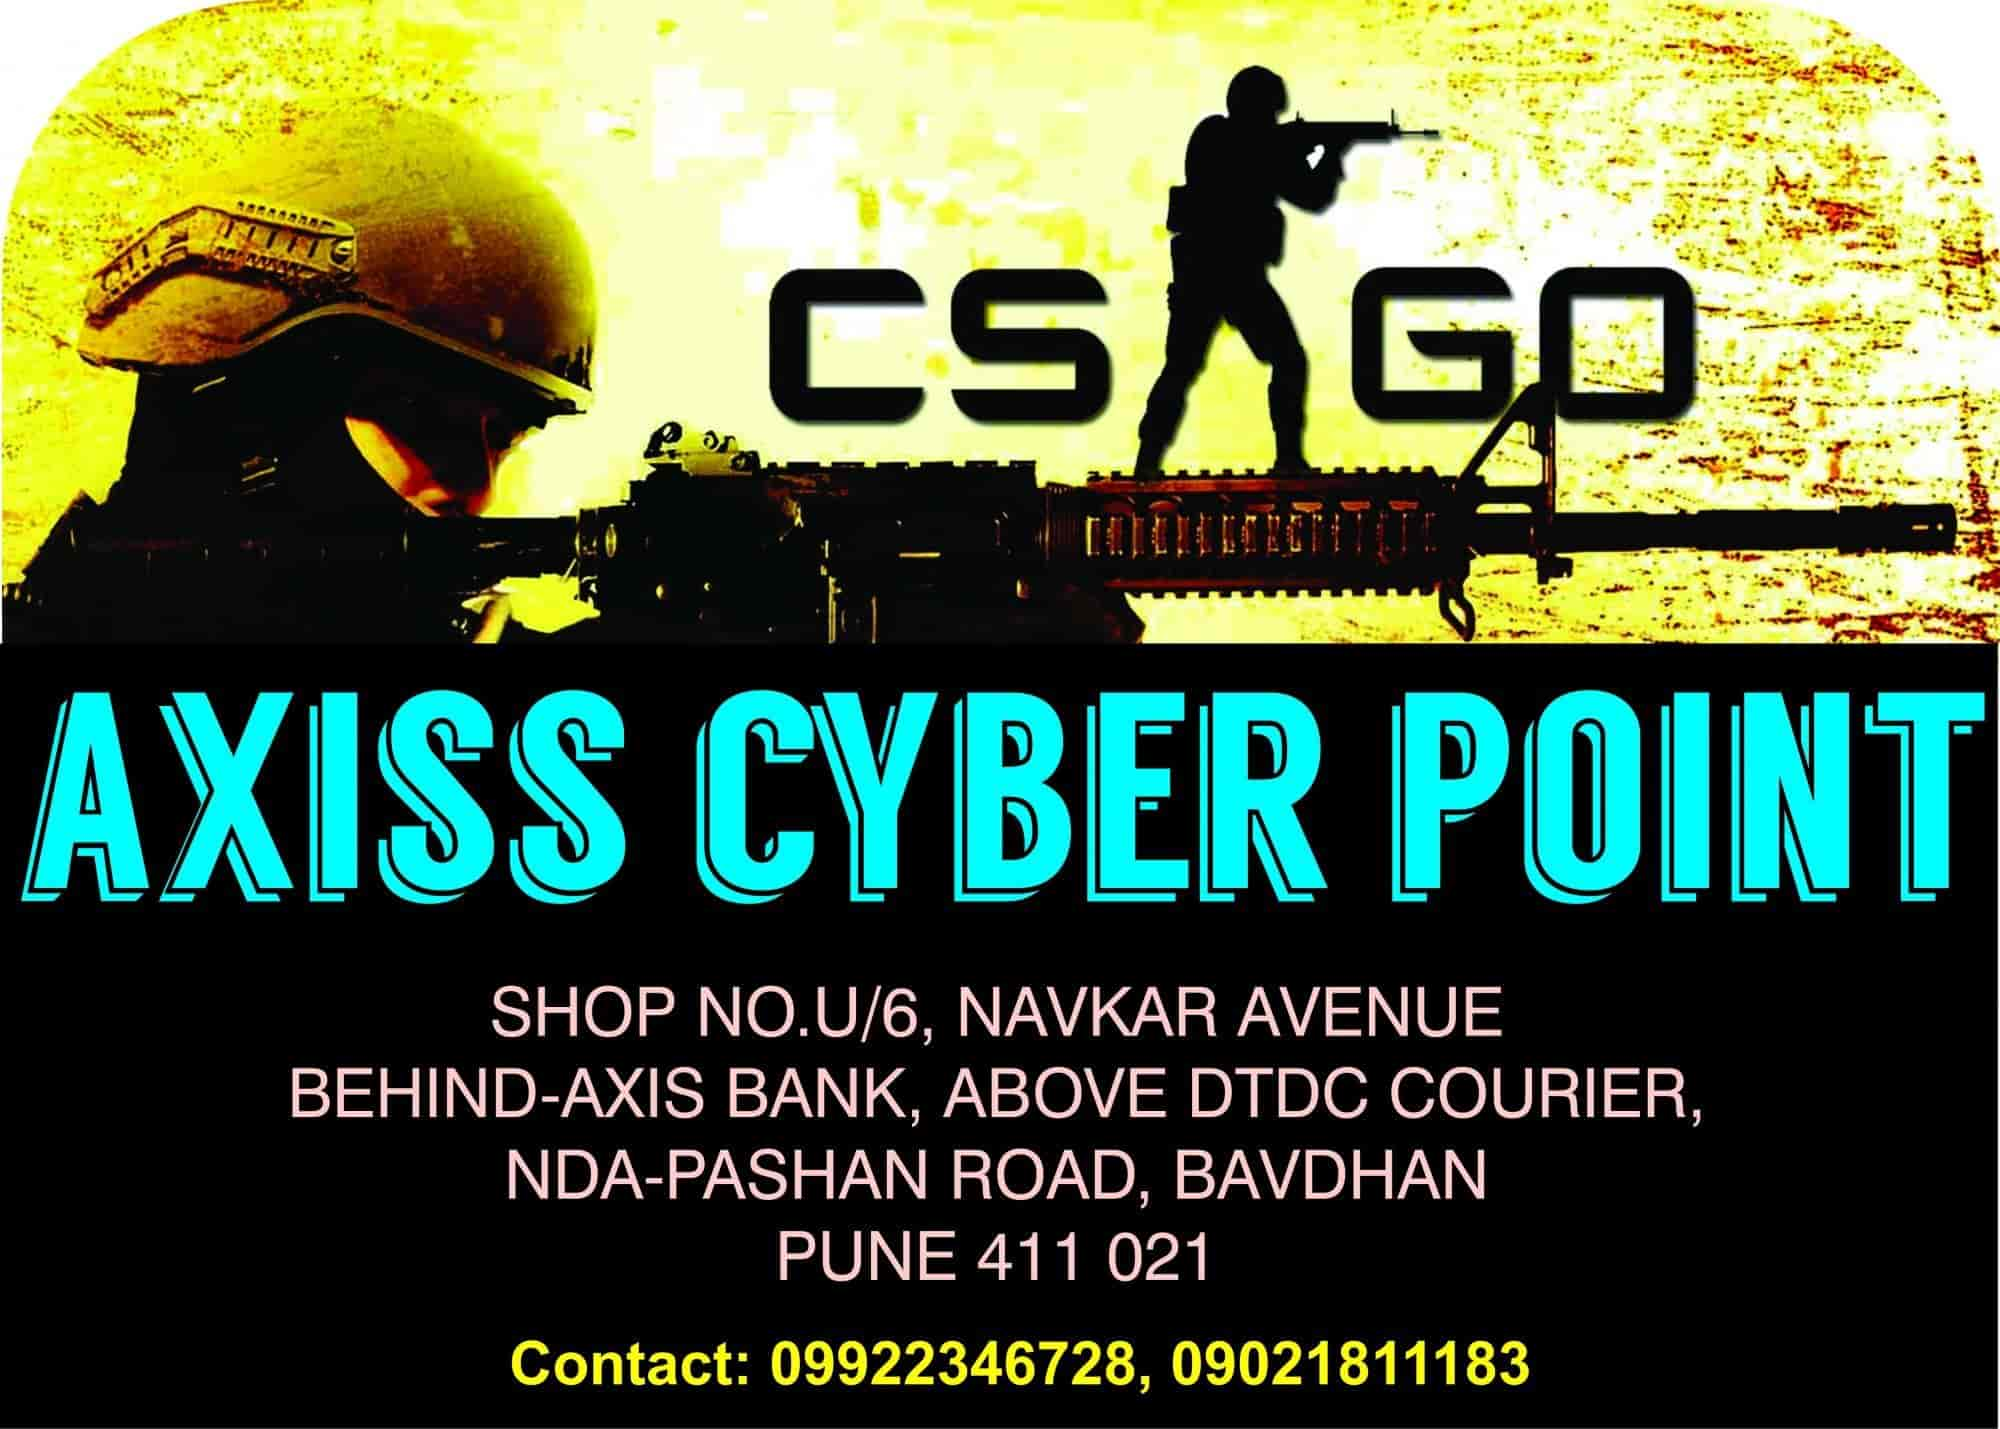 axiss cyber point bavdhan cyber cafes in pune justdial